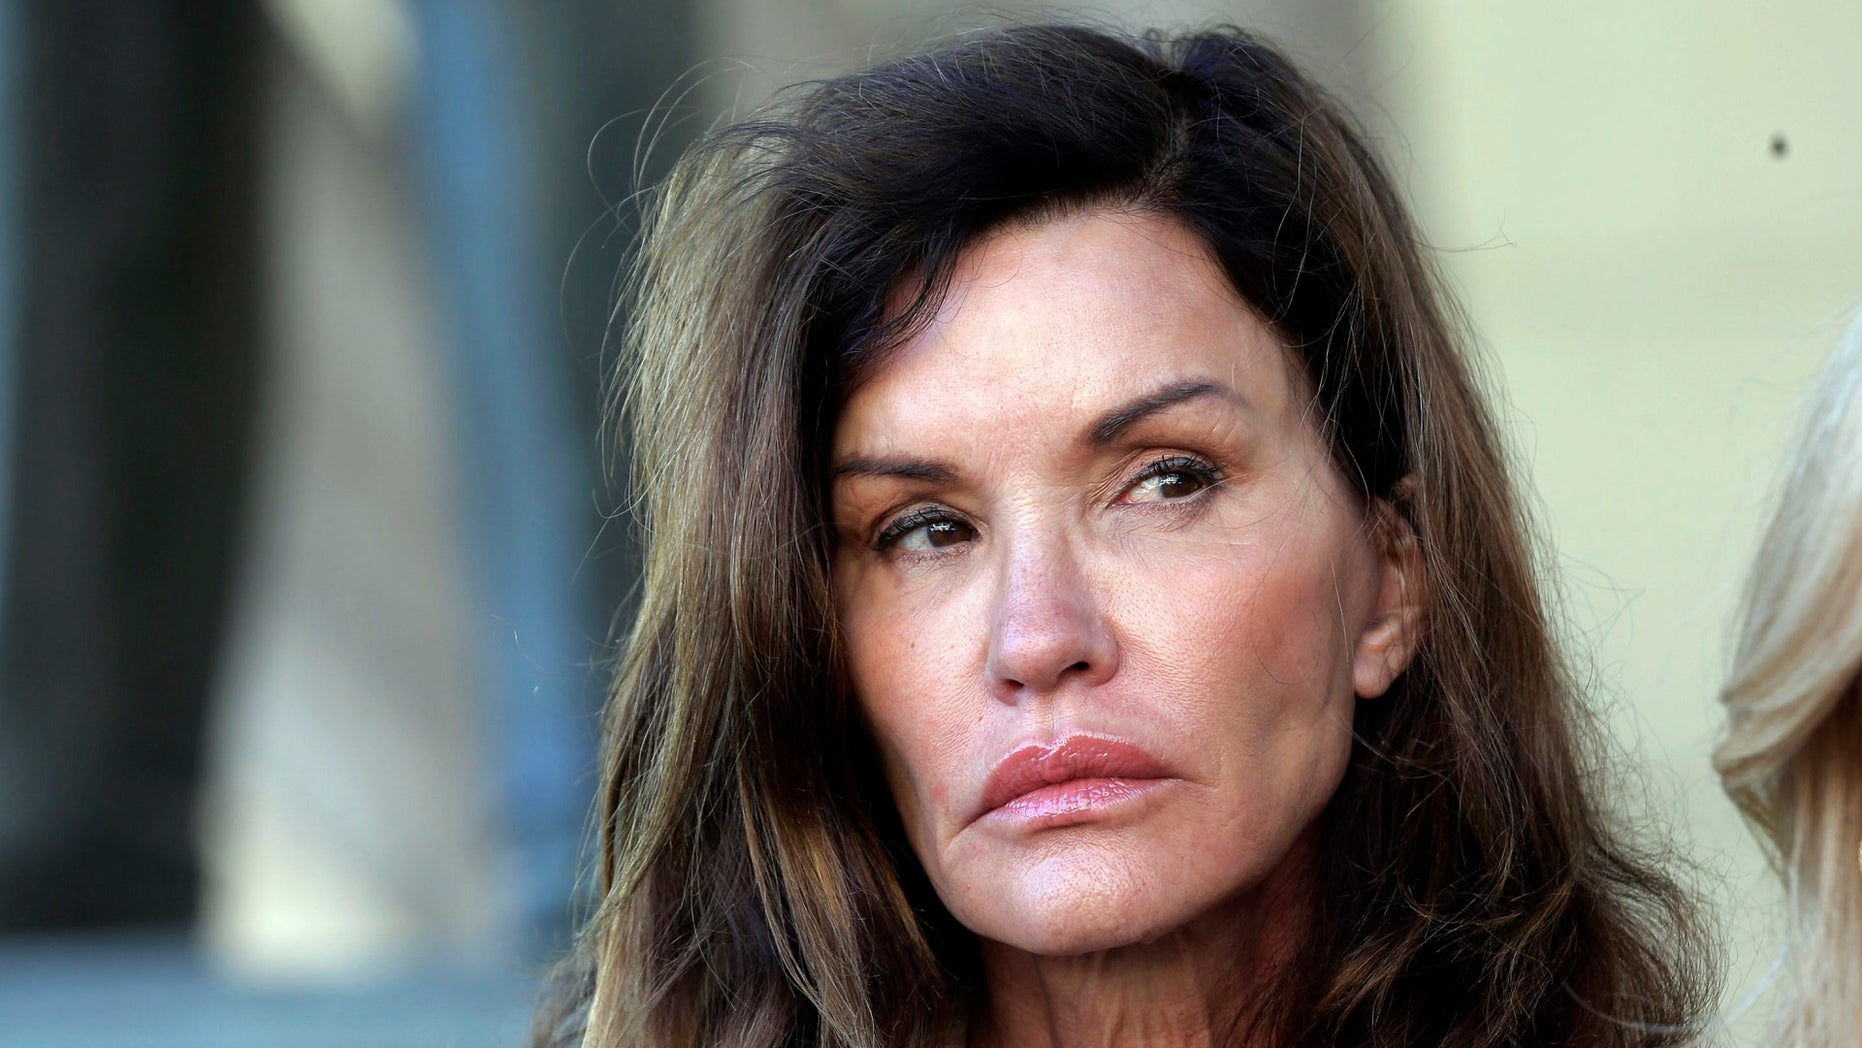 Model Janice Dickinson said she was drugged and raped by Bill Cosby in 1982.